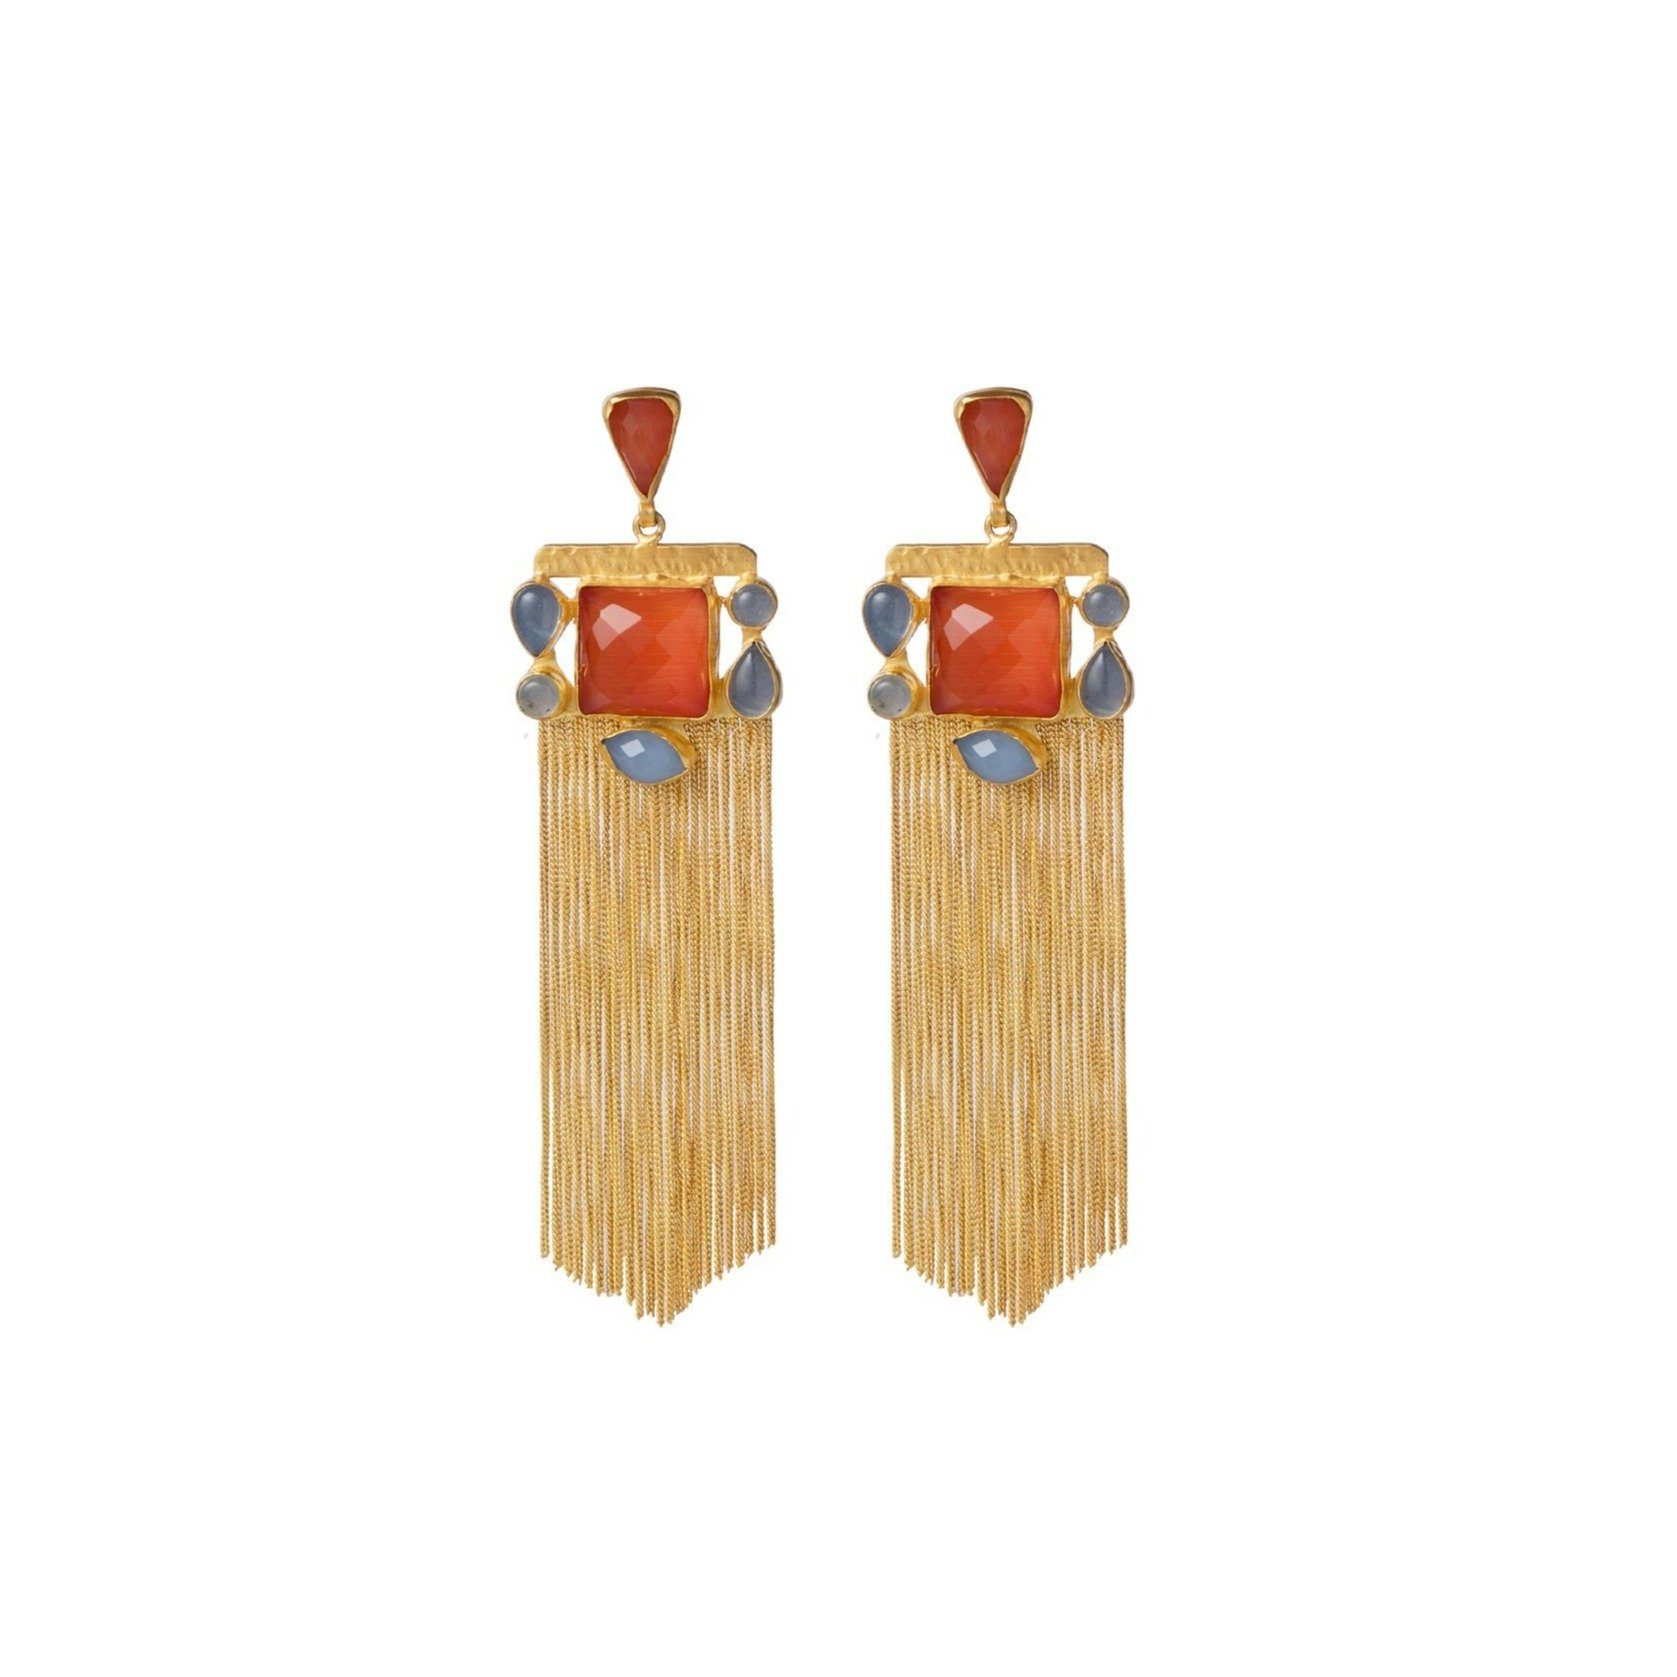 Lyra tassel earrings in blue chalcedony and orange onyx - Statement Pieces